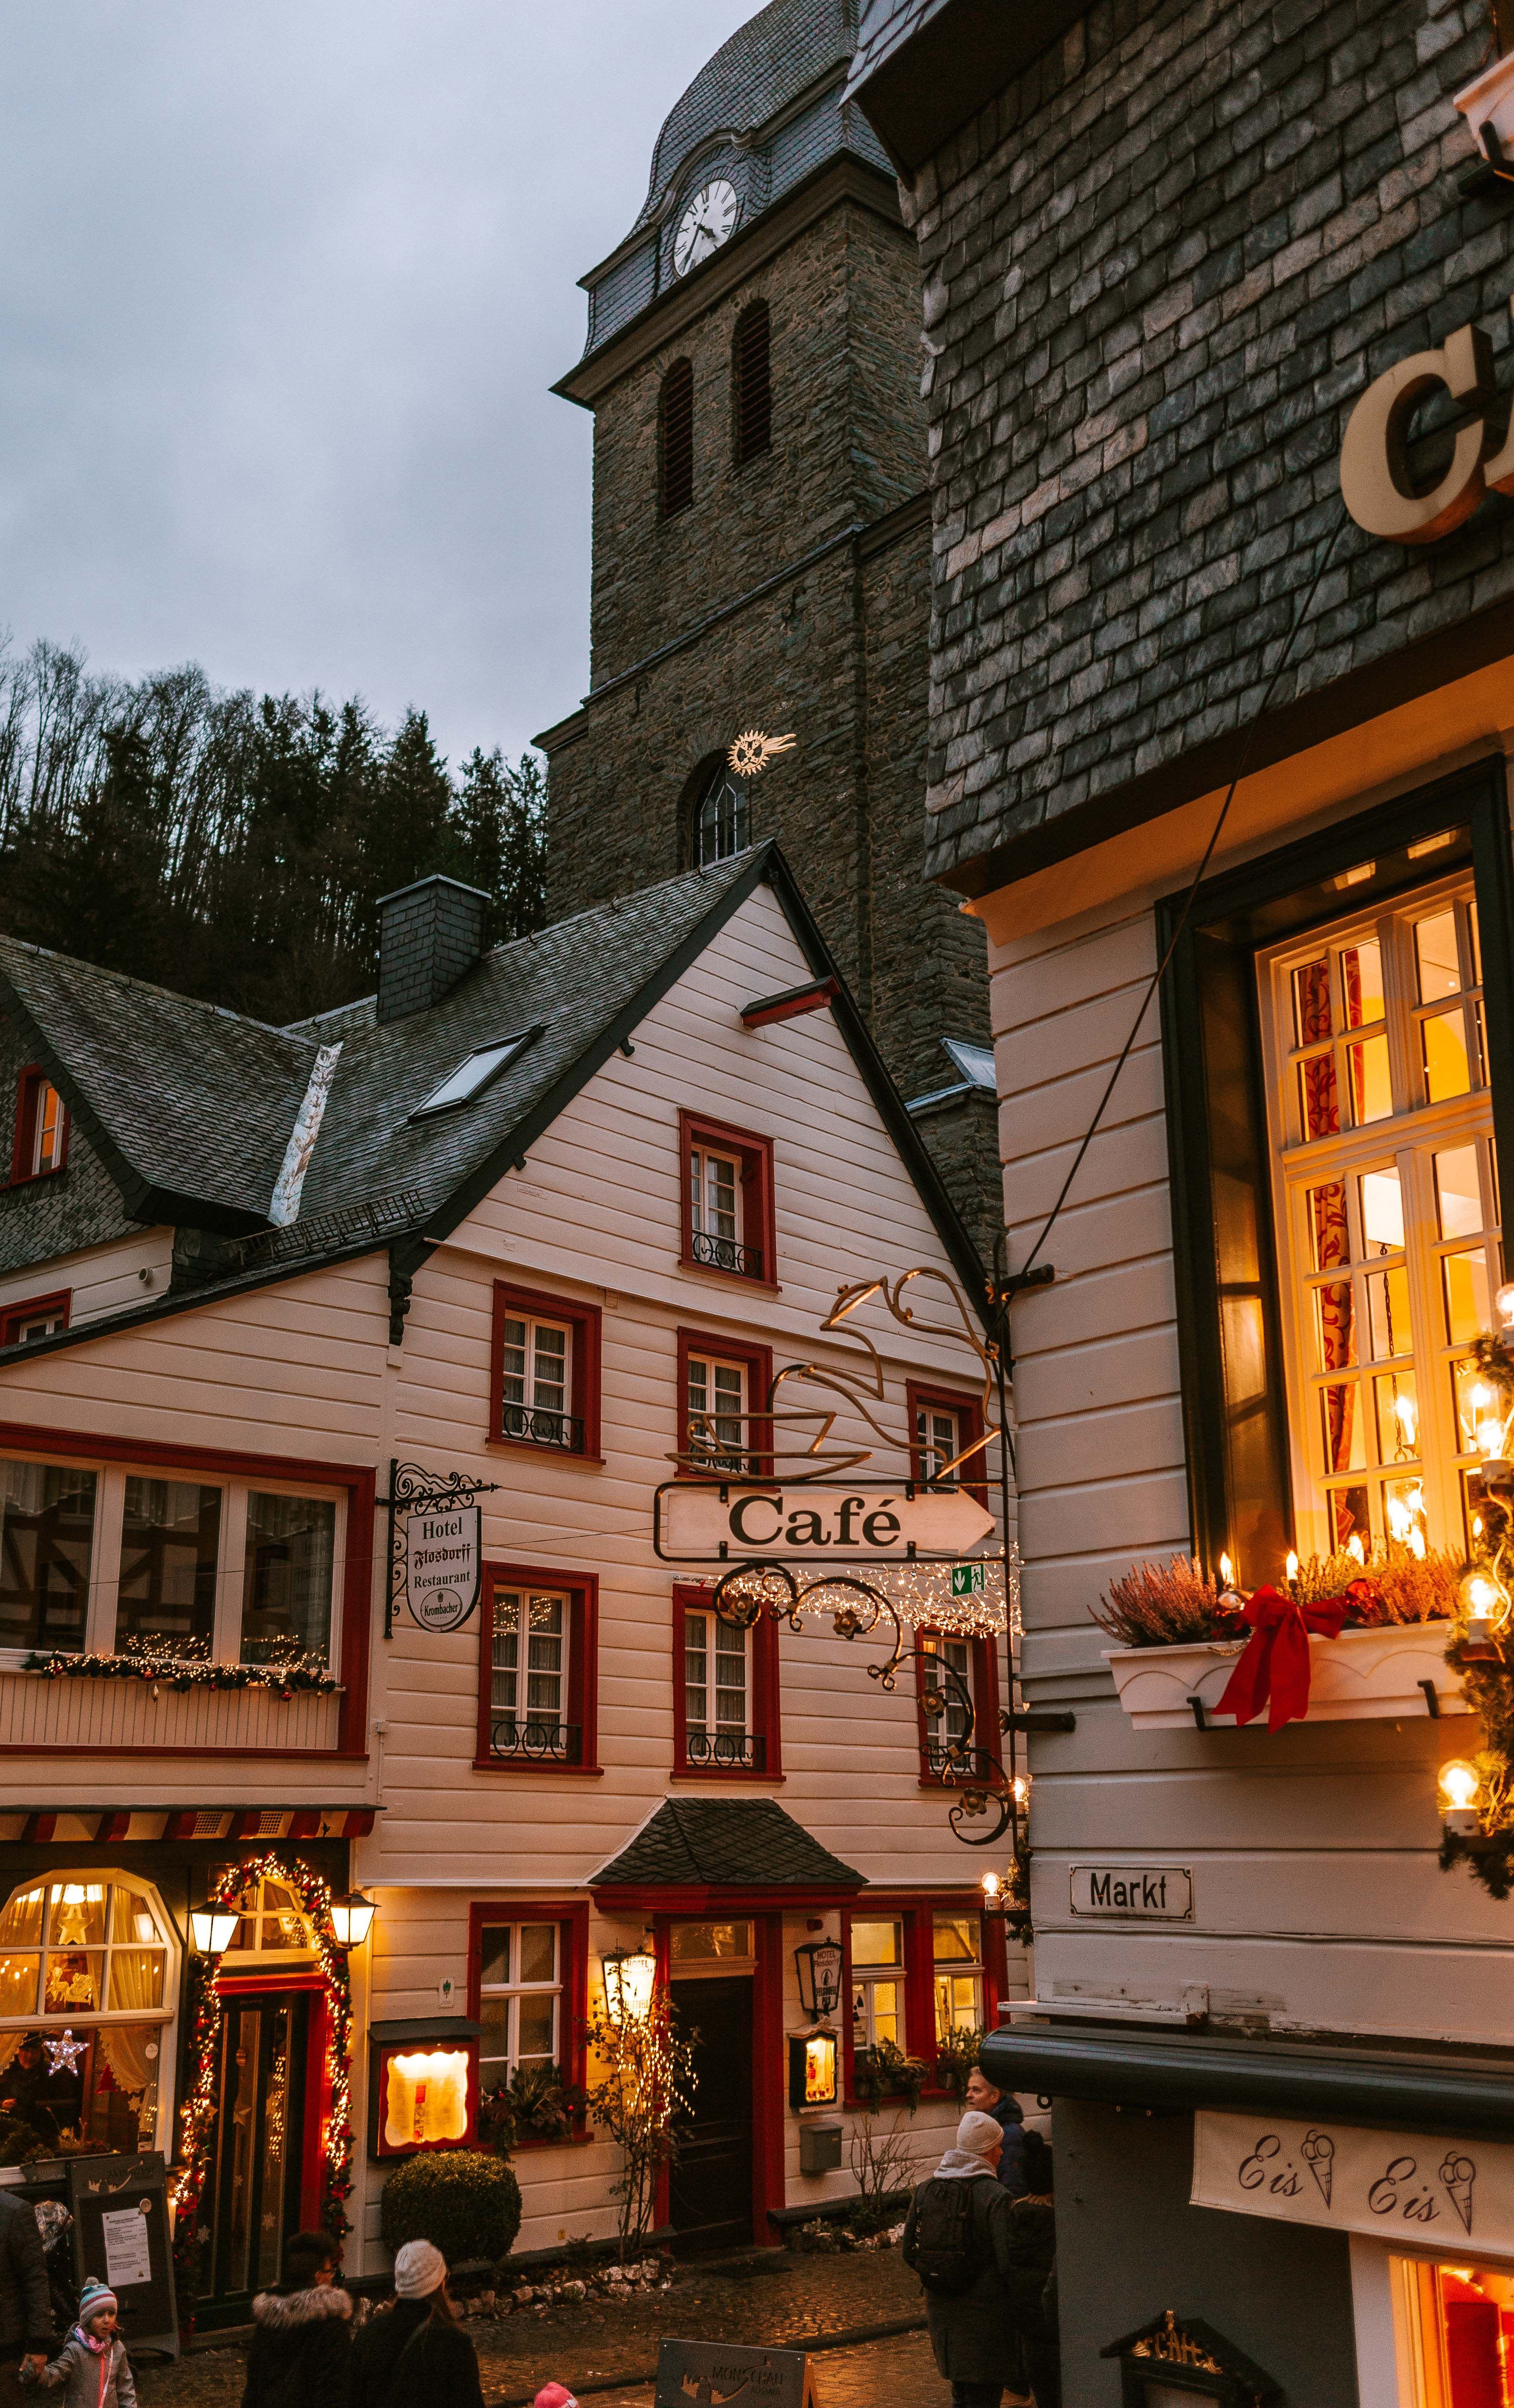 Monschau Christmas Market: Everything You Need to